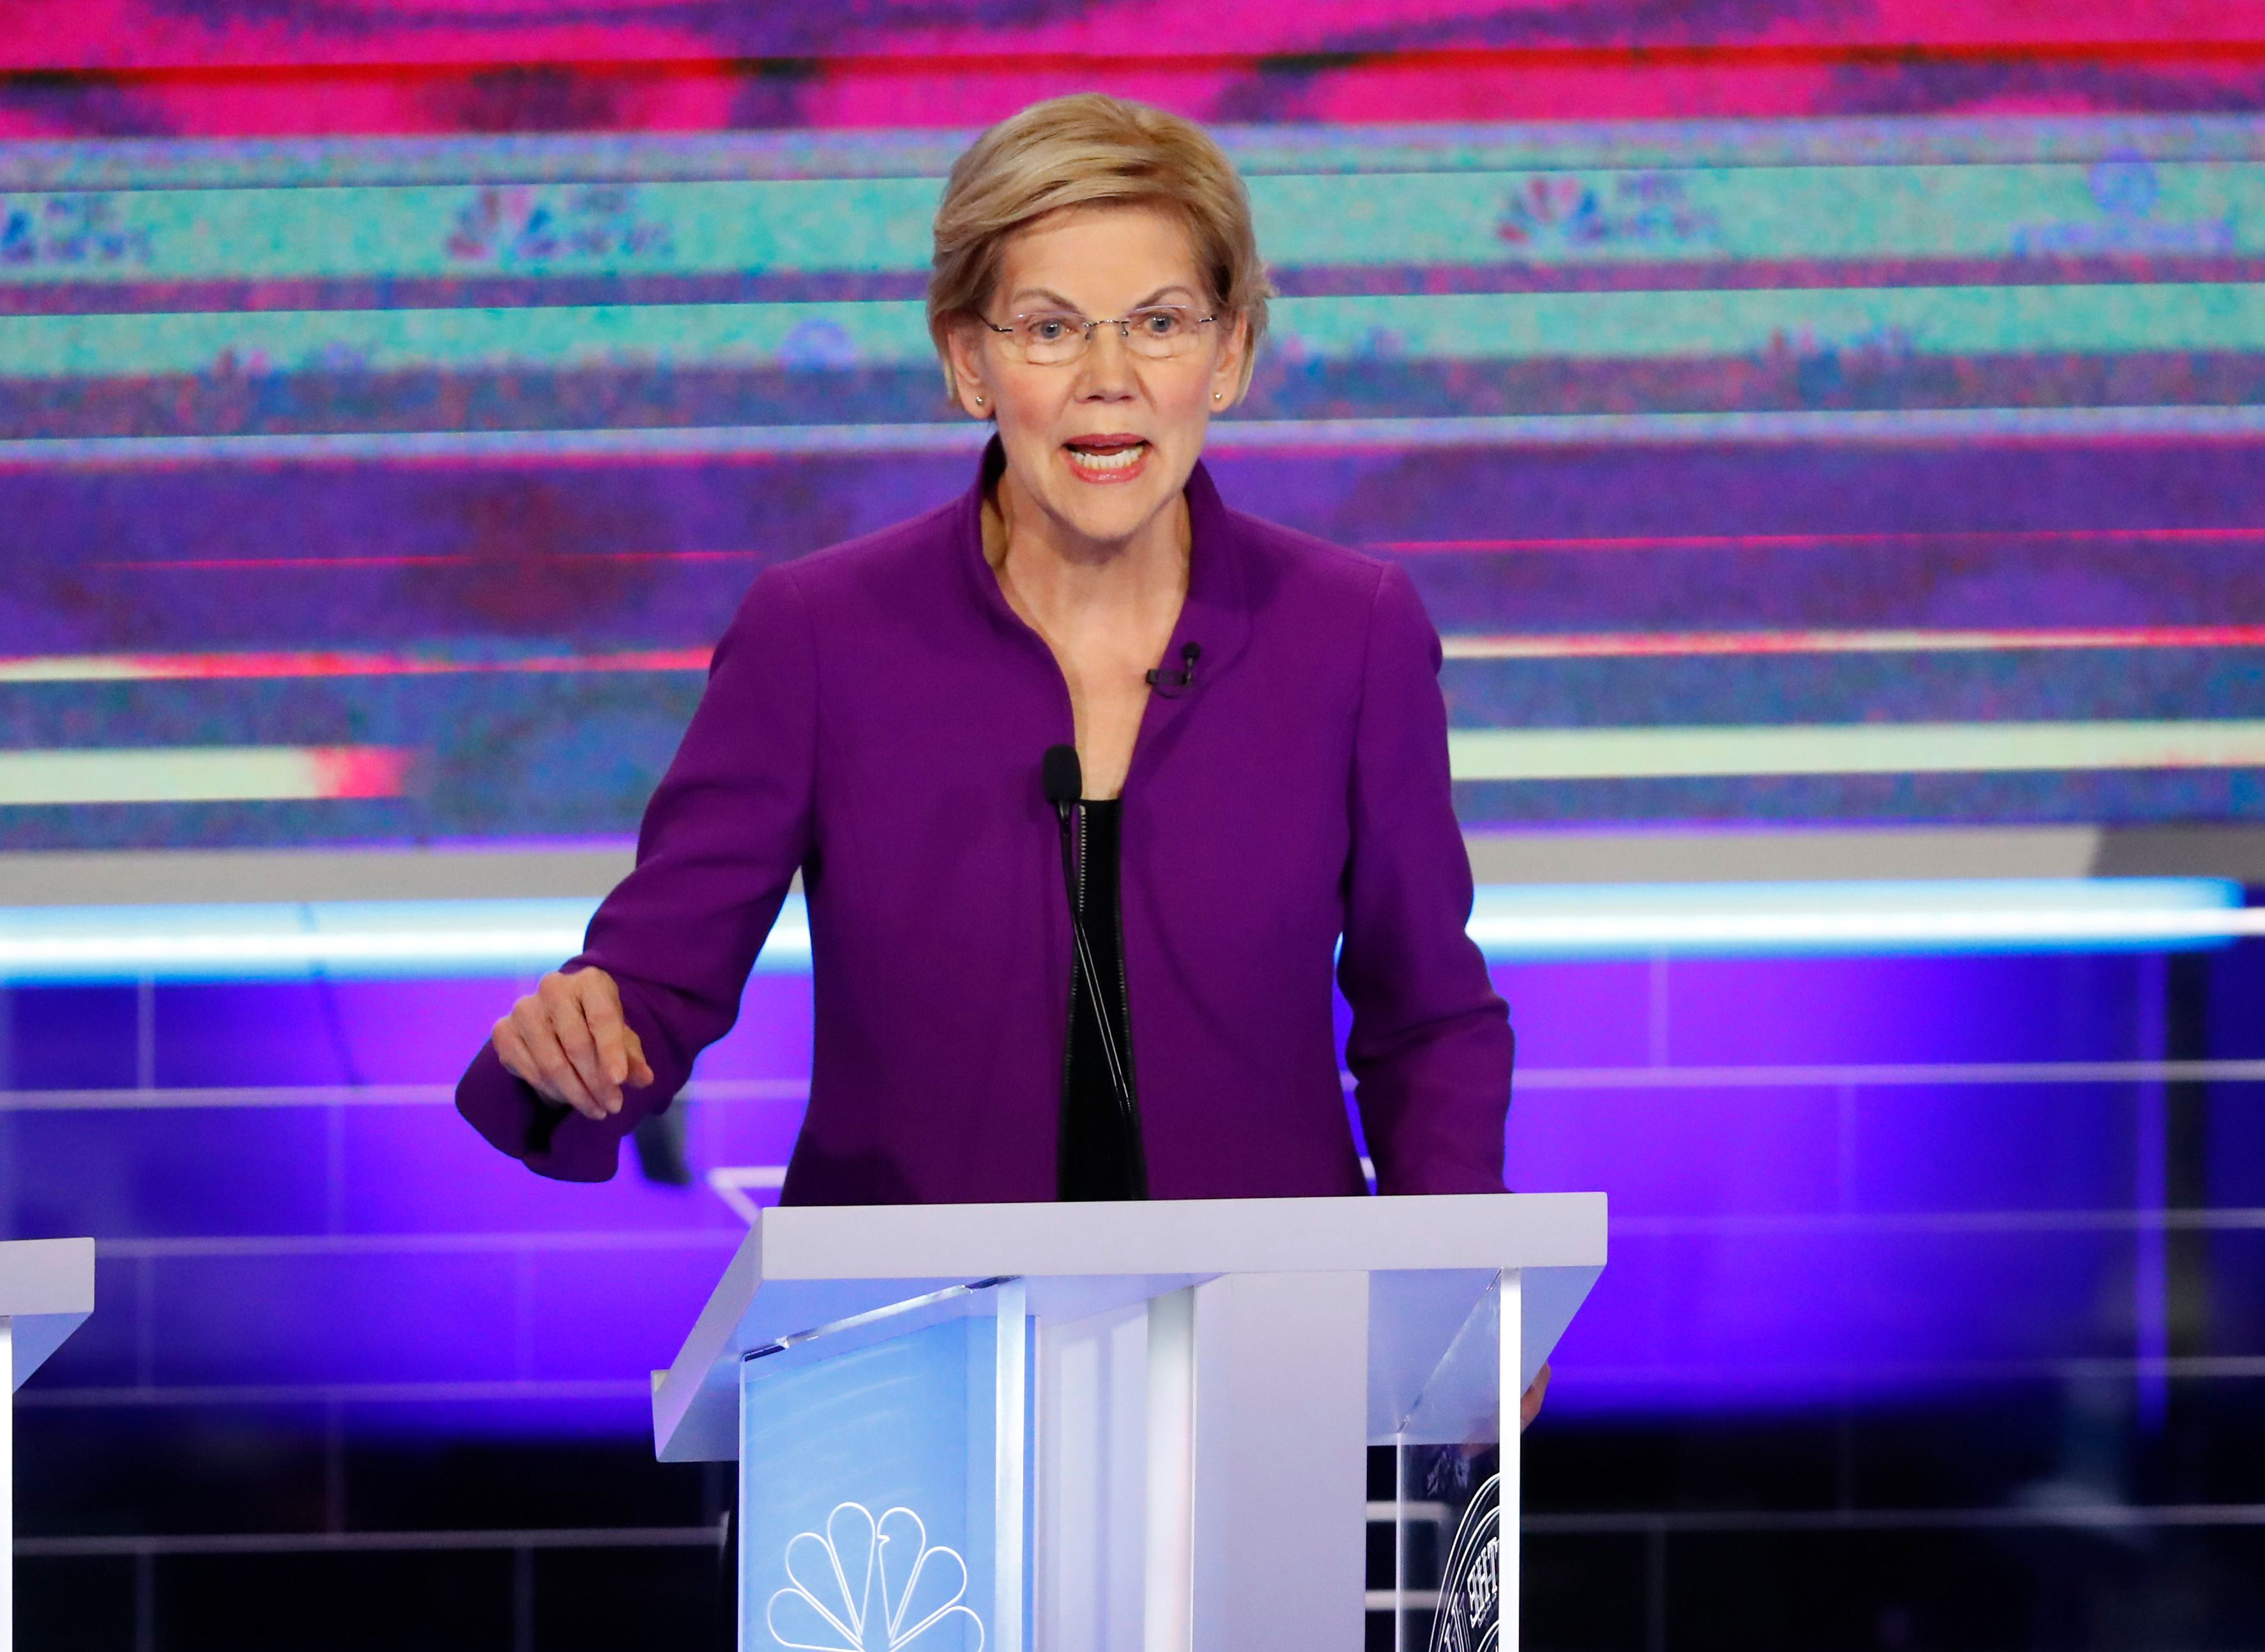 Democratic presidential candidate Sen. Elizabeth Warren, D-Mass., speaks during the Democratic primary debate hosted by NBC News at the Adrienne Arsht Center for the Performing Art, in MiamiElection 2020 Debate, Miami, USA - 26 Jun 2019